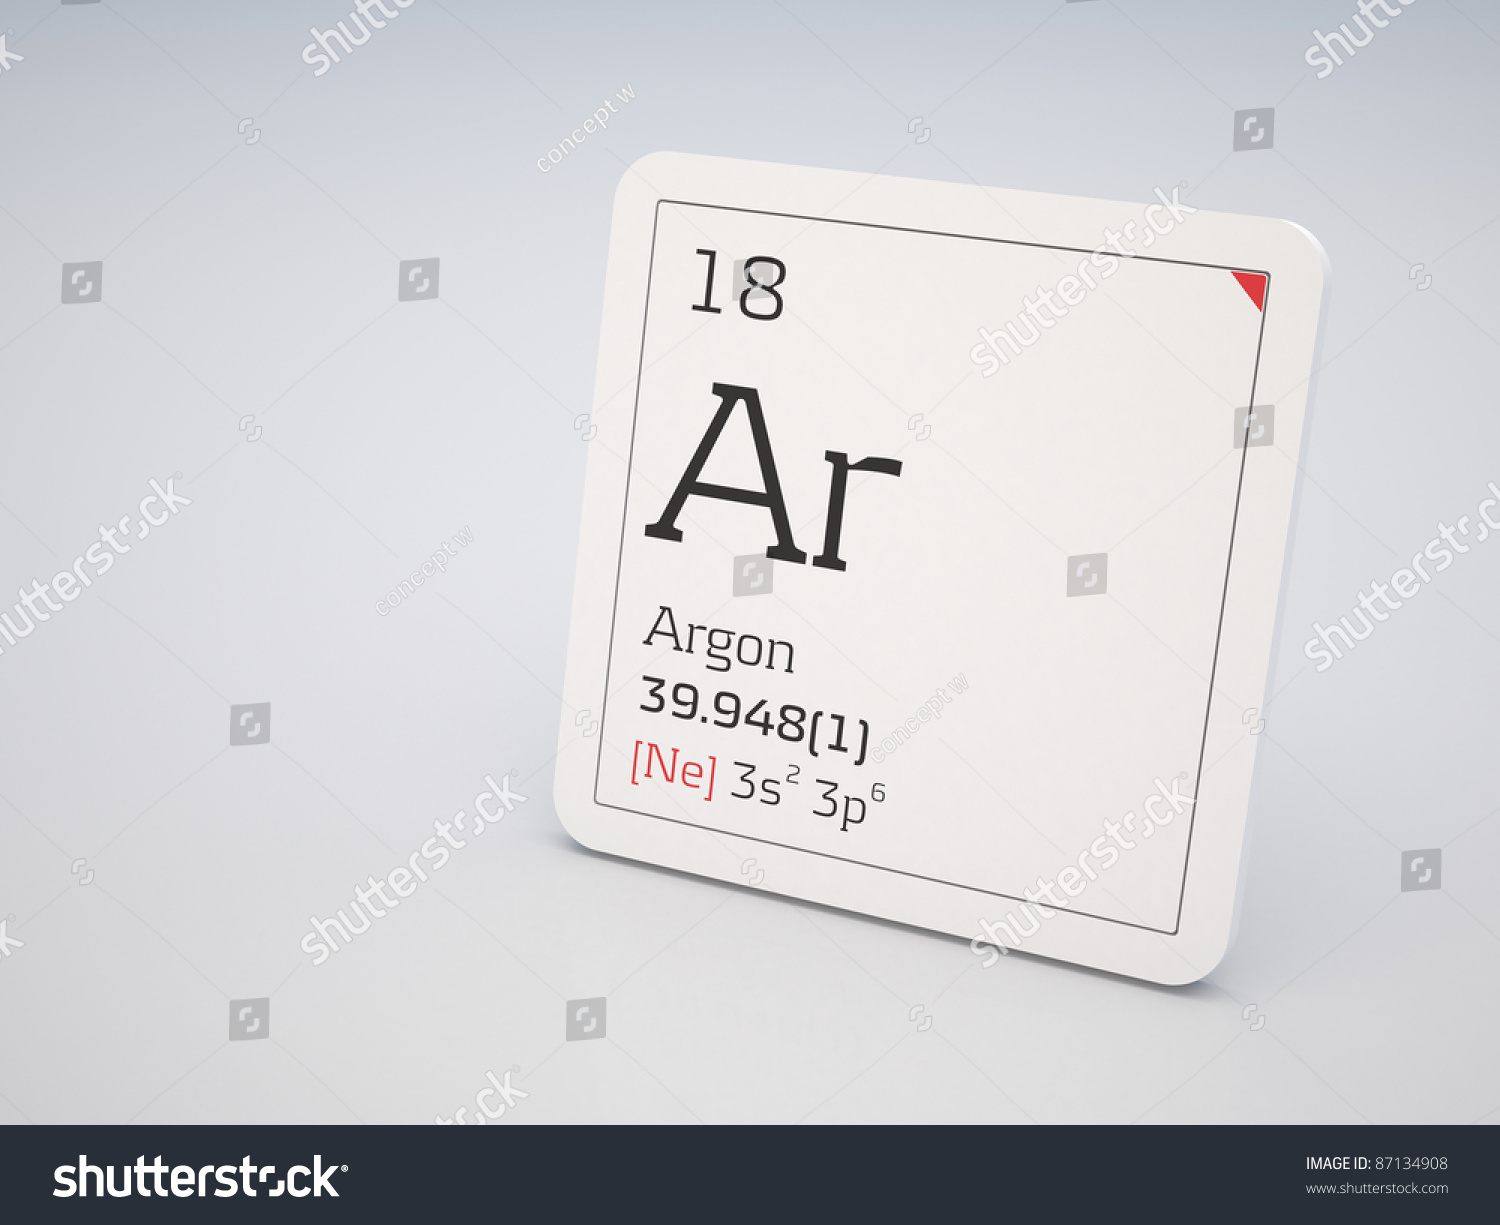 Periodic table element song choice image periodic table images the periodic table song slow image collections periodic table images the periodic table song slow image gamestrikefo Image collections